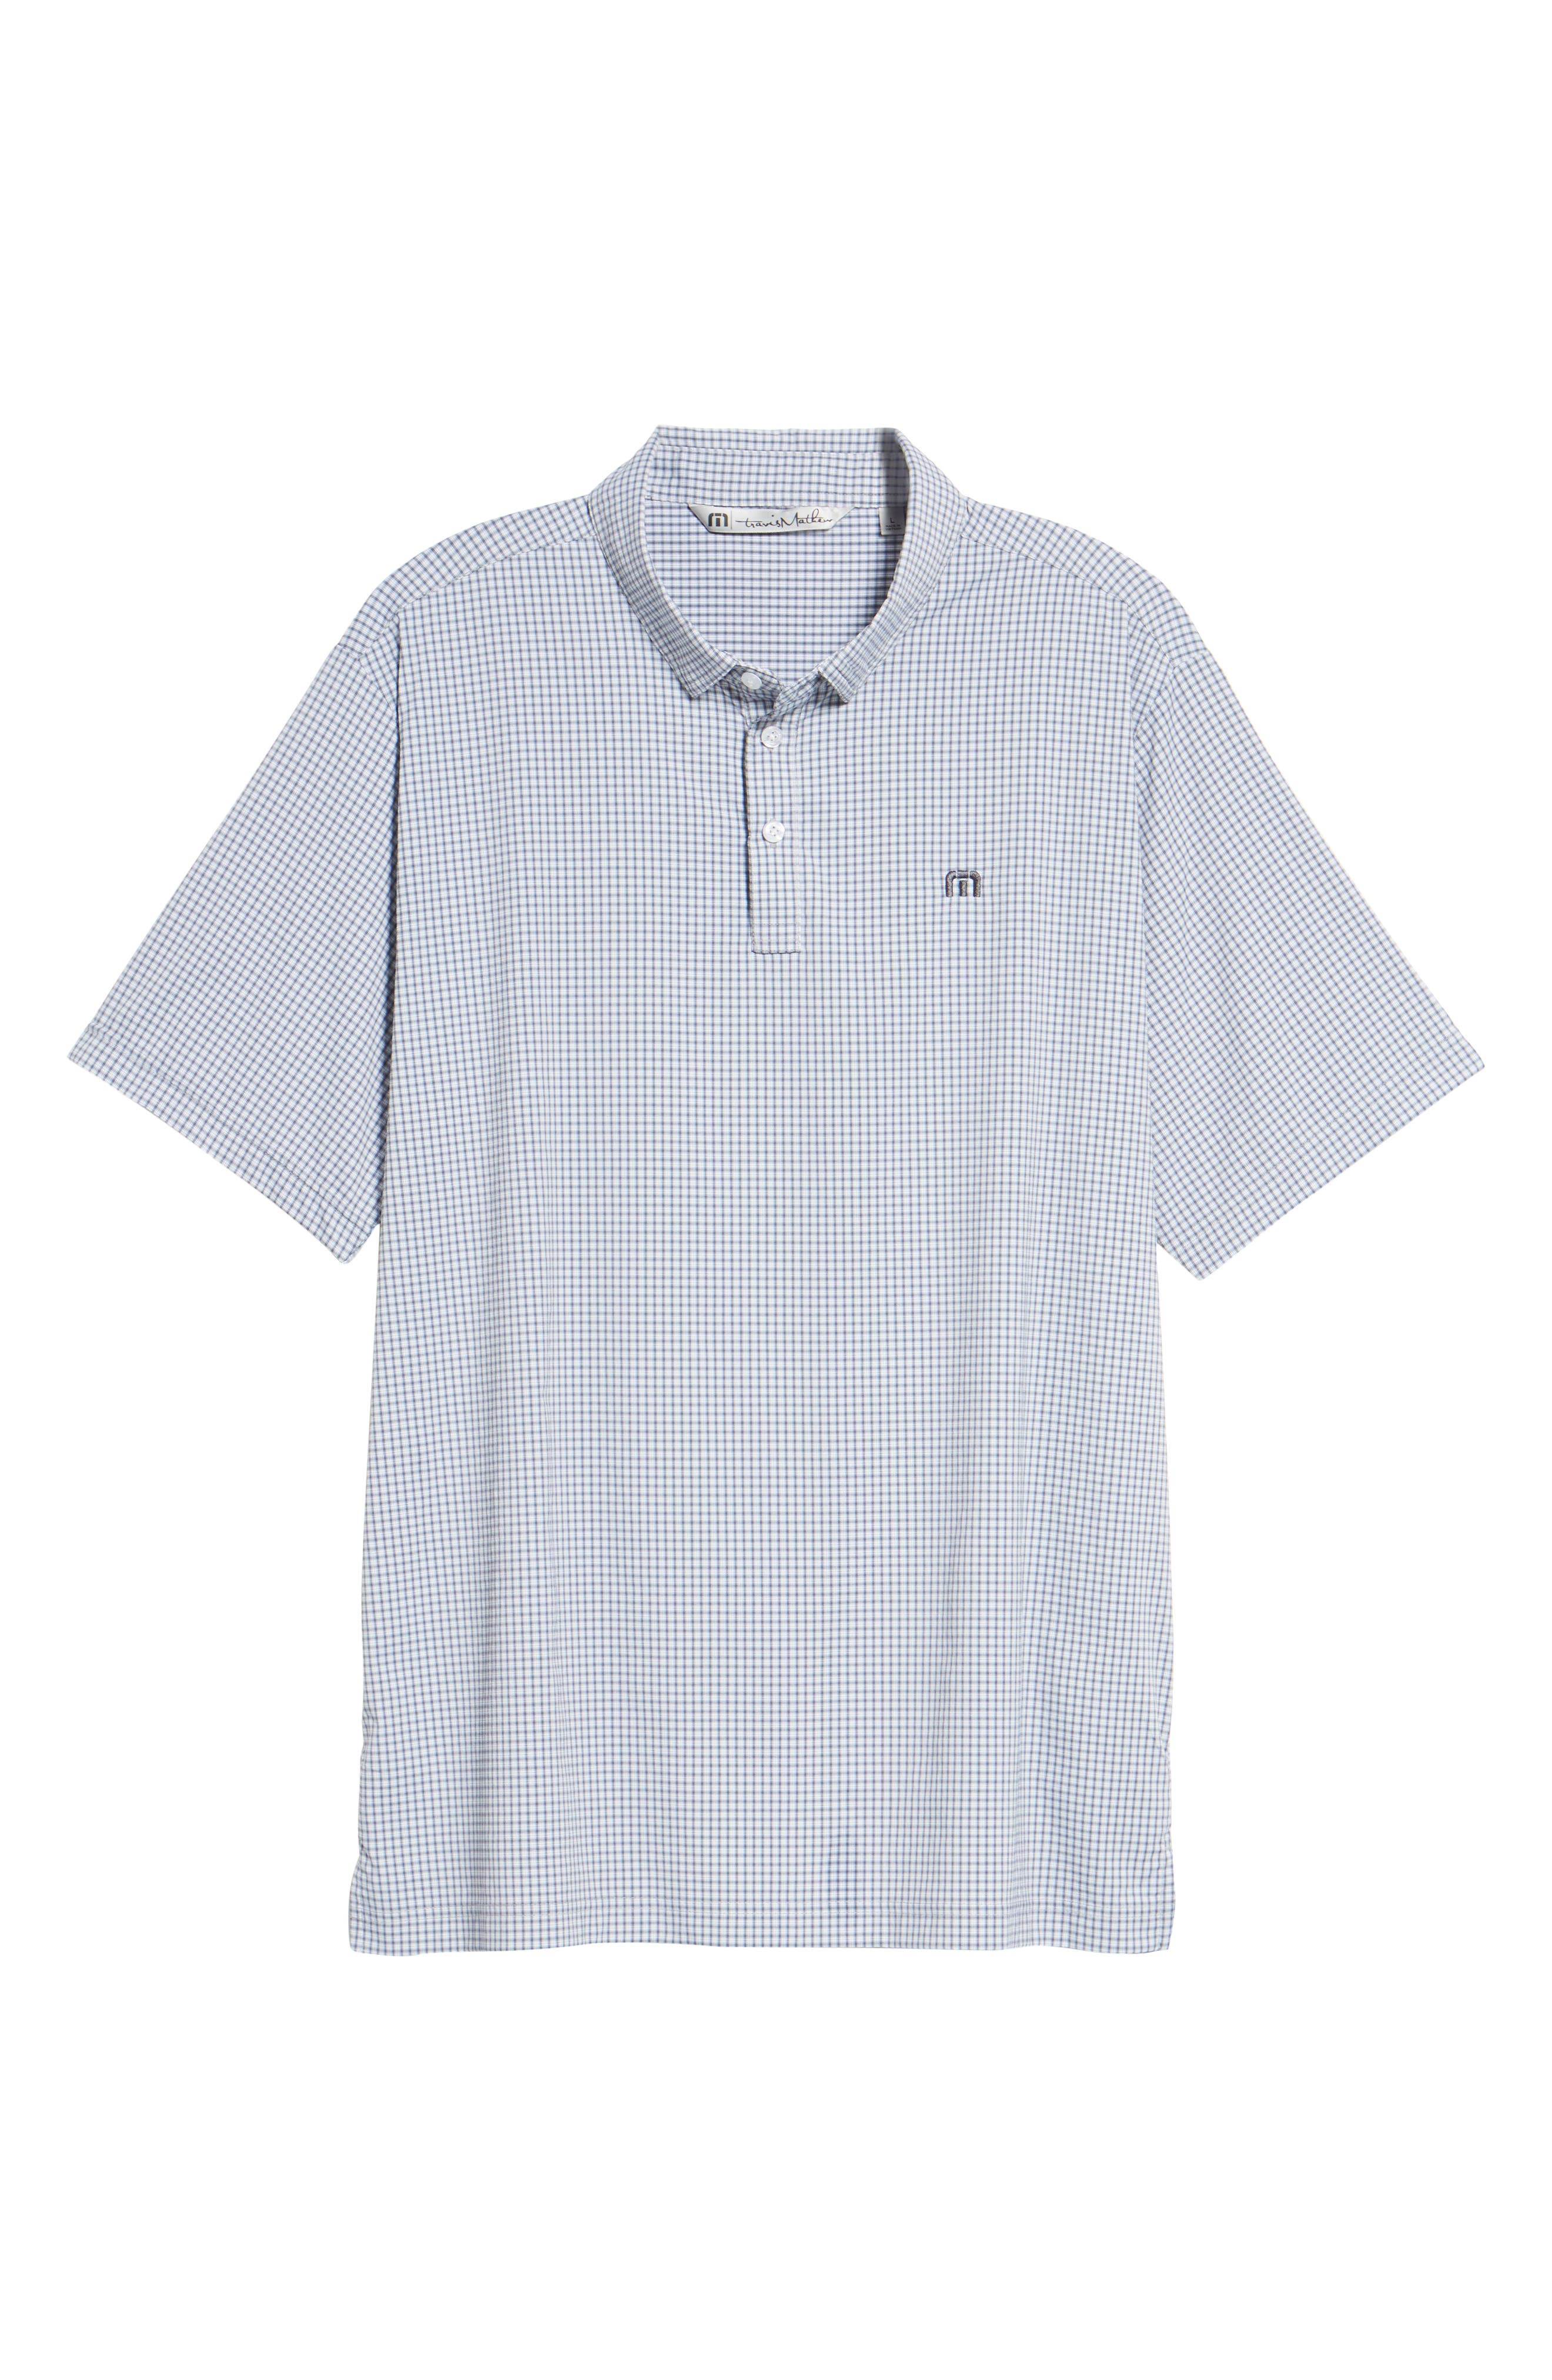 Zim Polo,                             Alternate thumbnail 6, color,                             White/ Grisaille